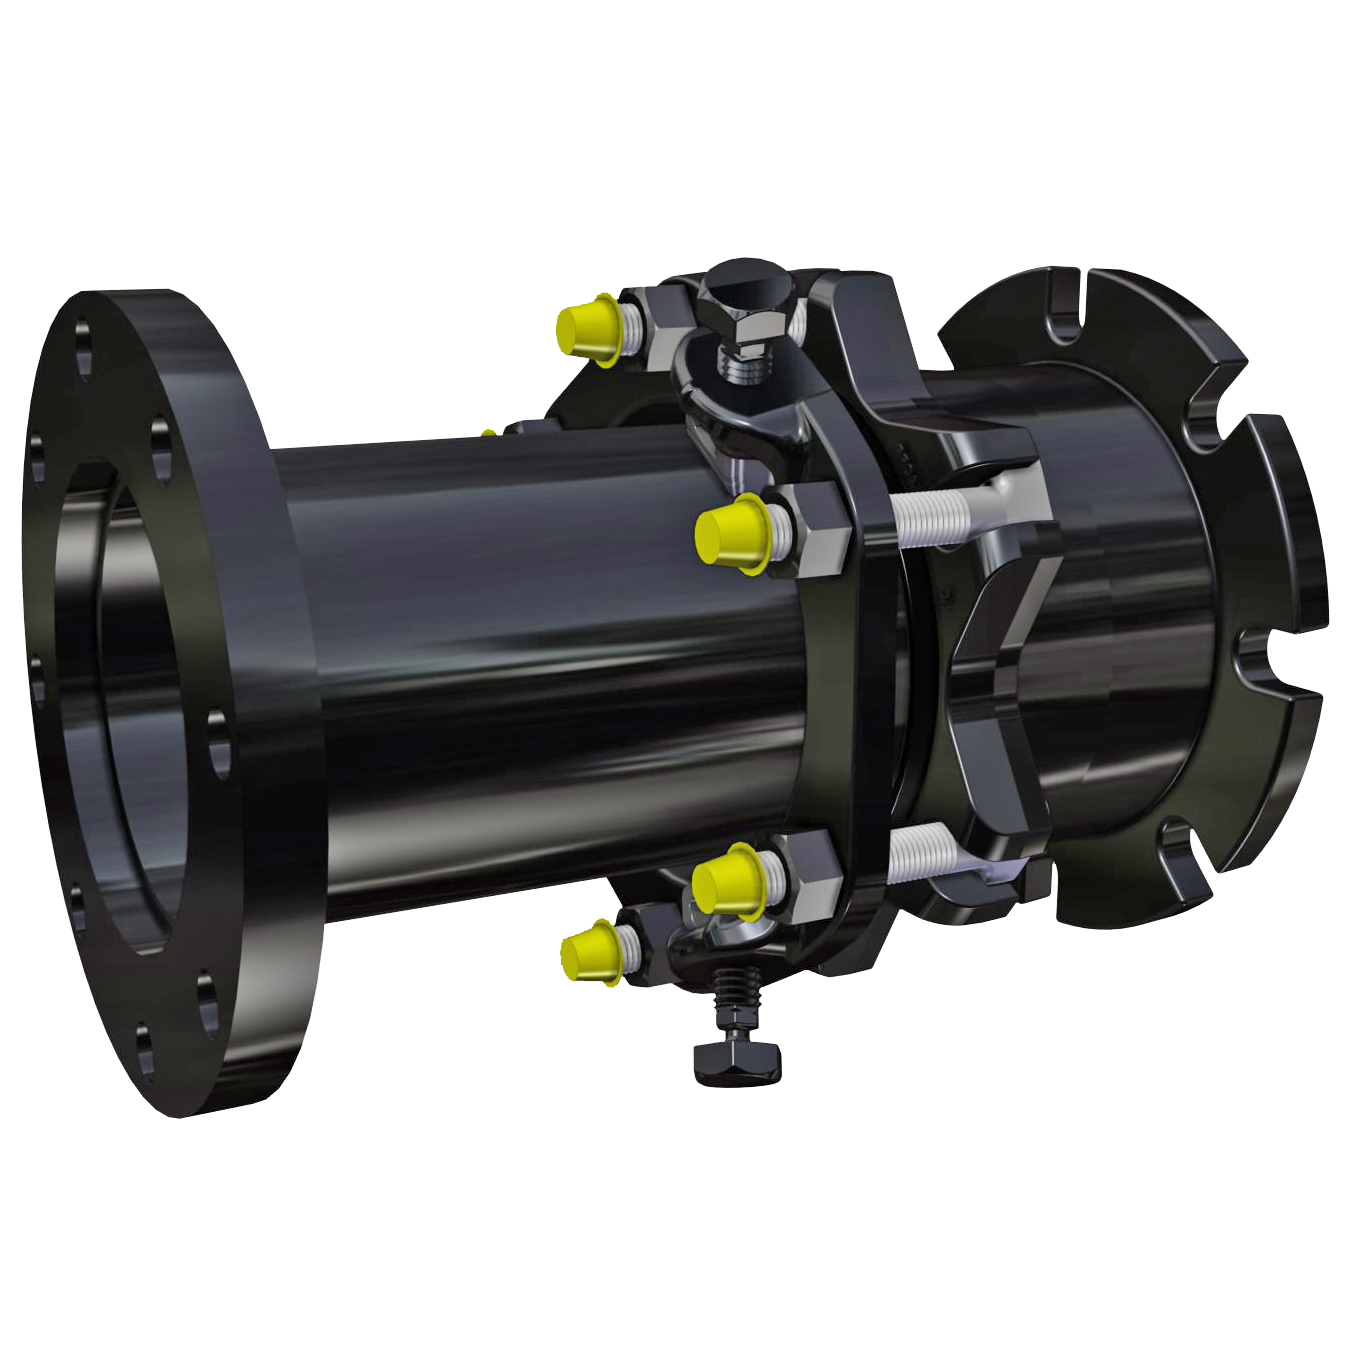 DJ405 - Adjustable telescoping restraint without tie-rods. Ideal for systems that require periodic maintenance, the DJ405 can be adjusted to length to allow access for installation or removal of valves and other equipment.Nominal Sizes3 - 24 inchesWorking PressureUp to the maximum rating of the flange